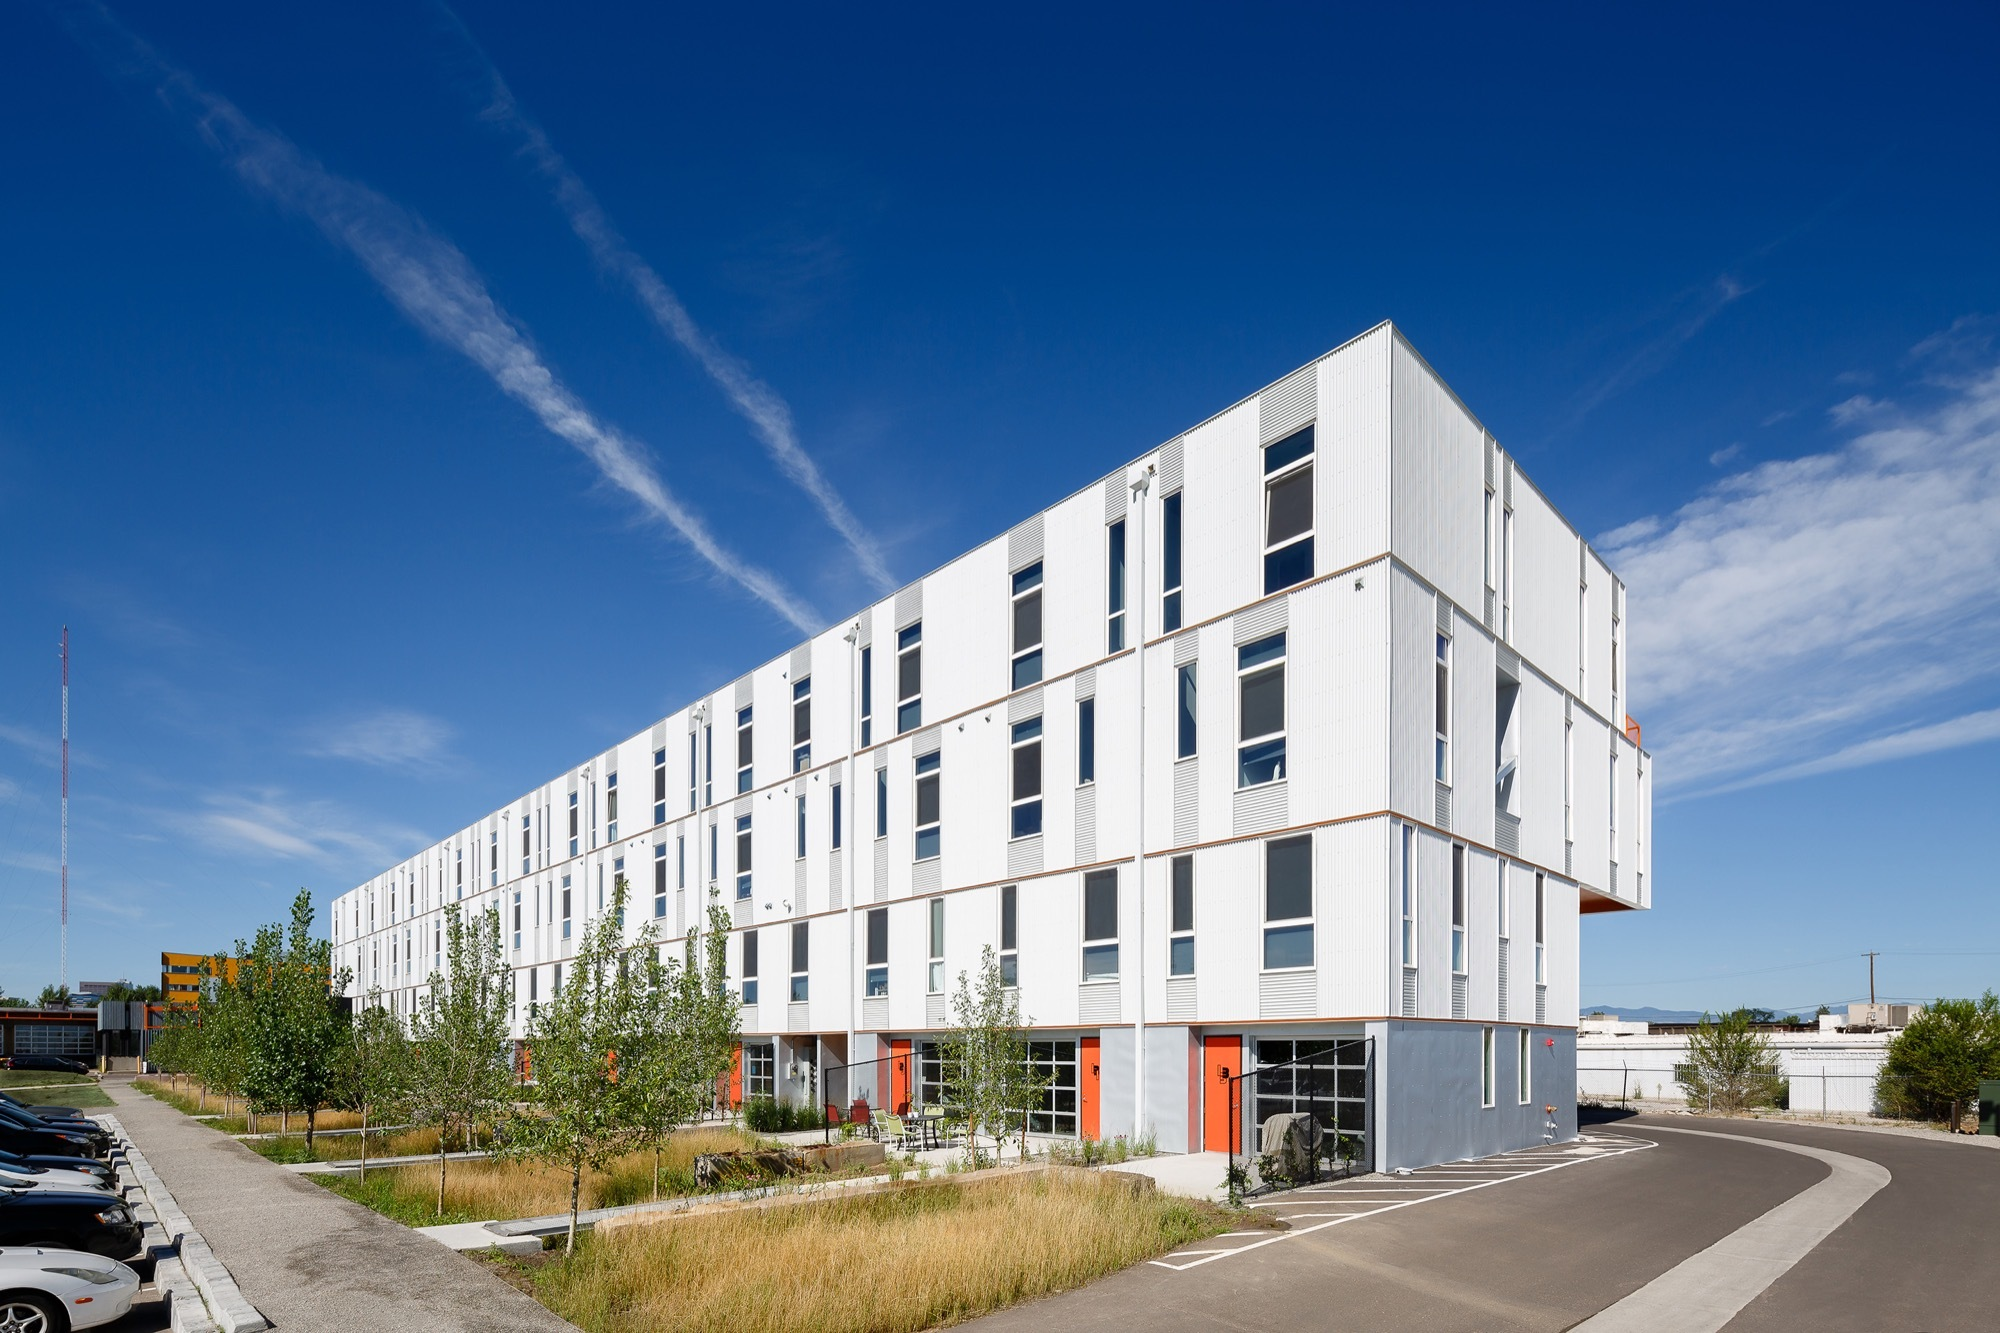 Freight Residences / Dynia Architects